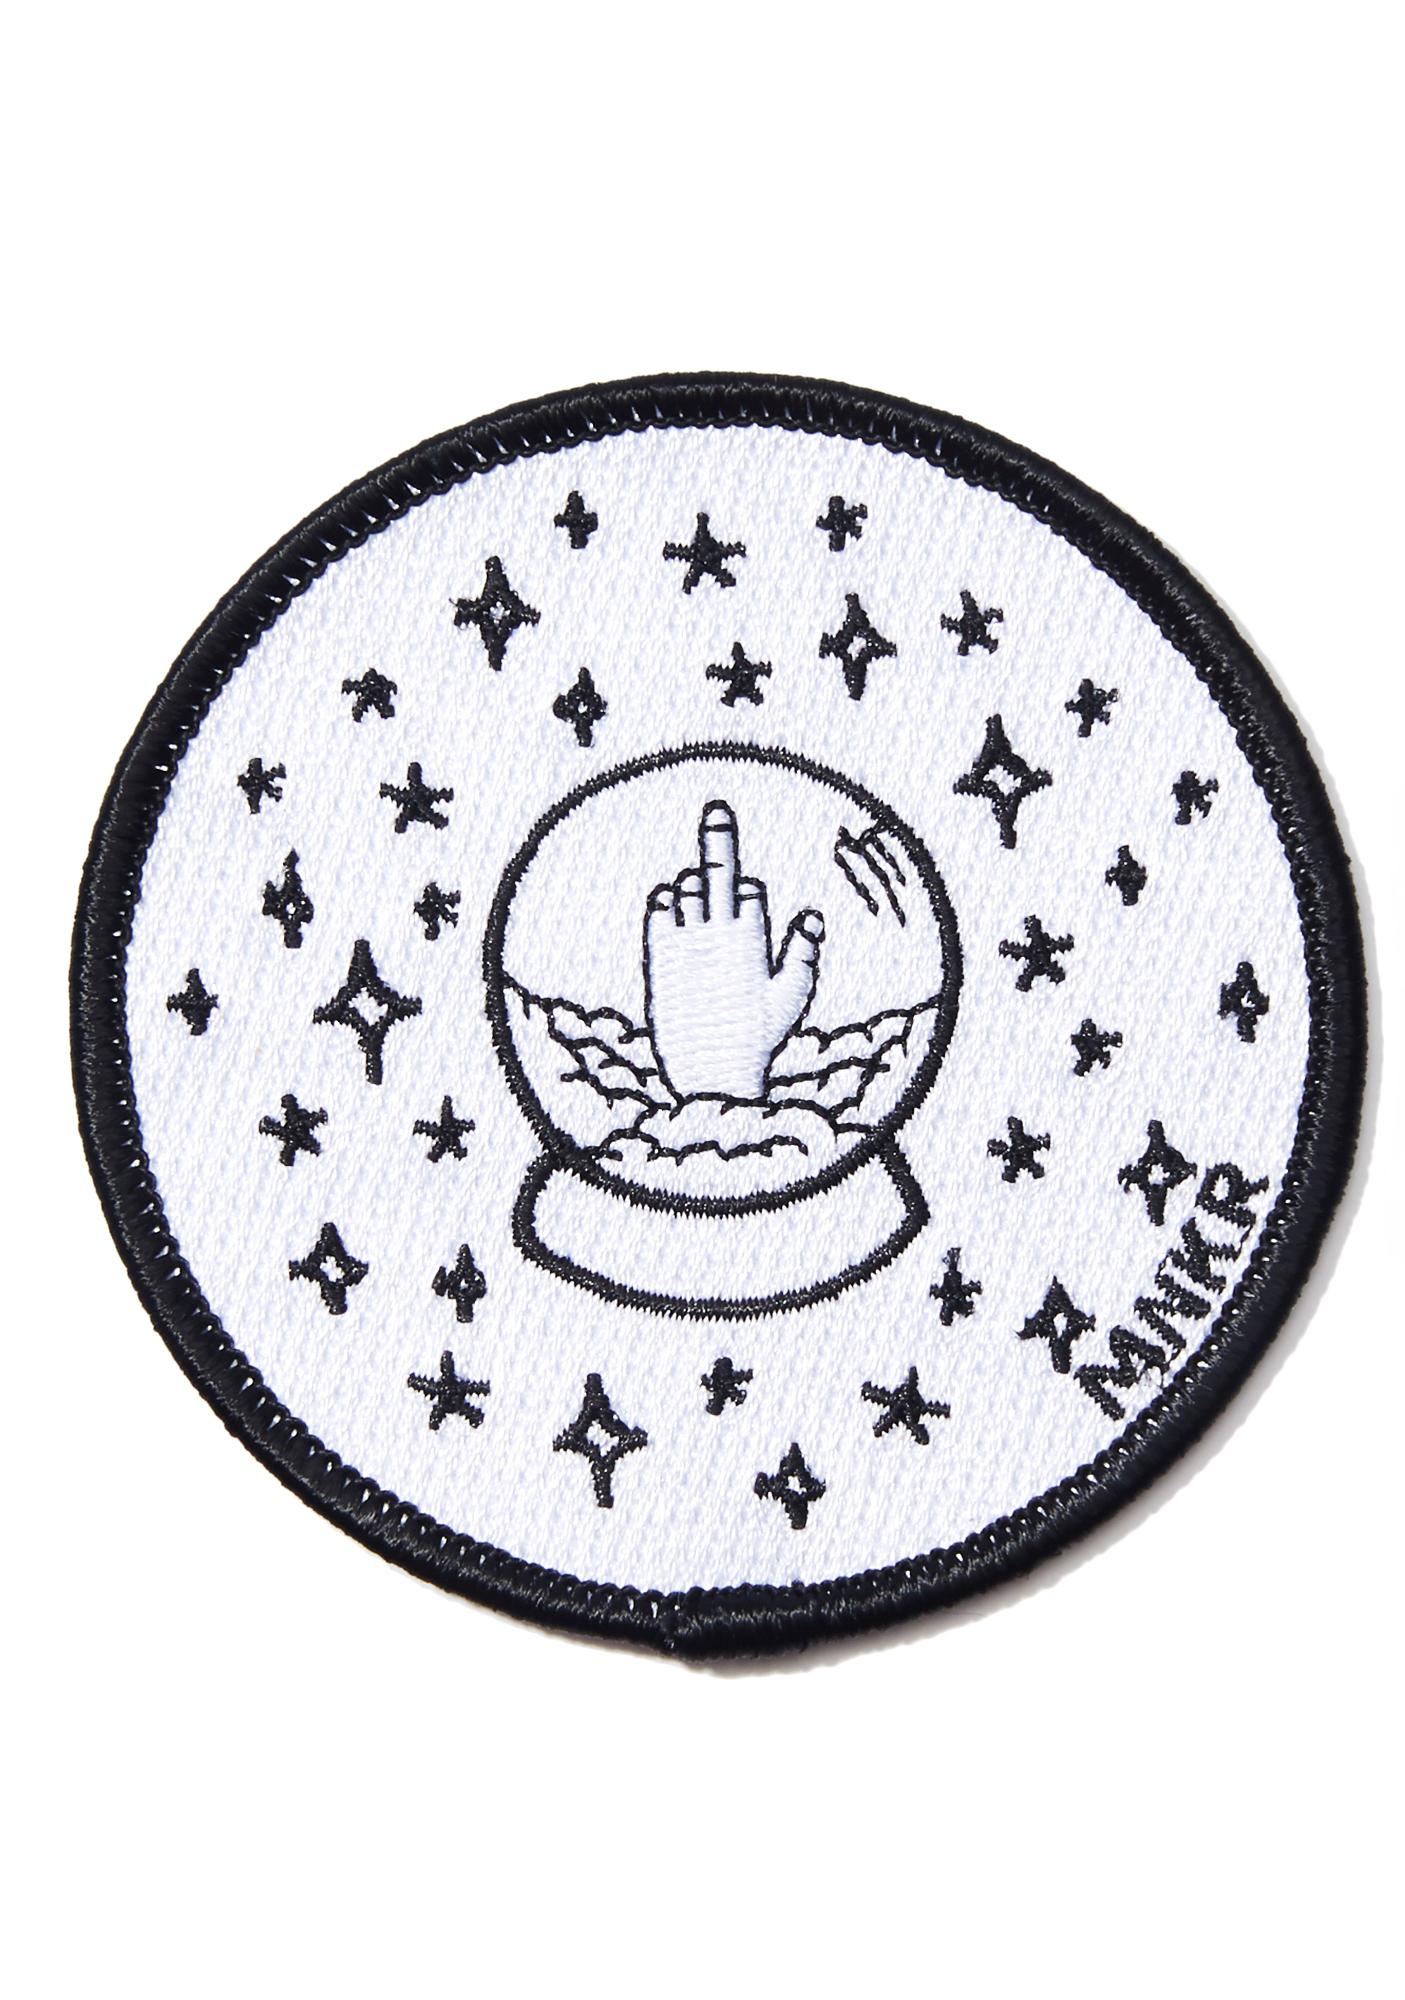 MNKR Crystal Ball Patch